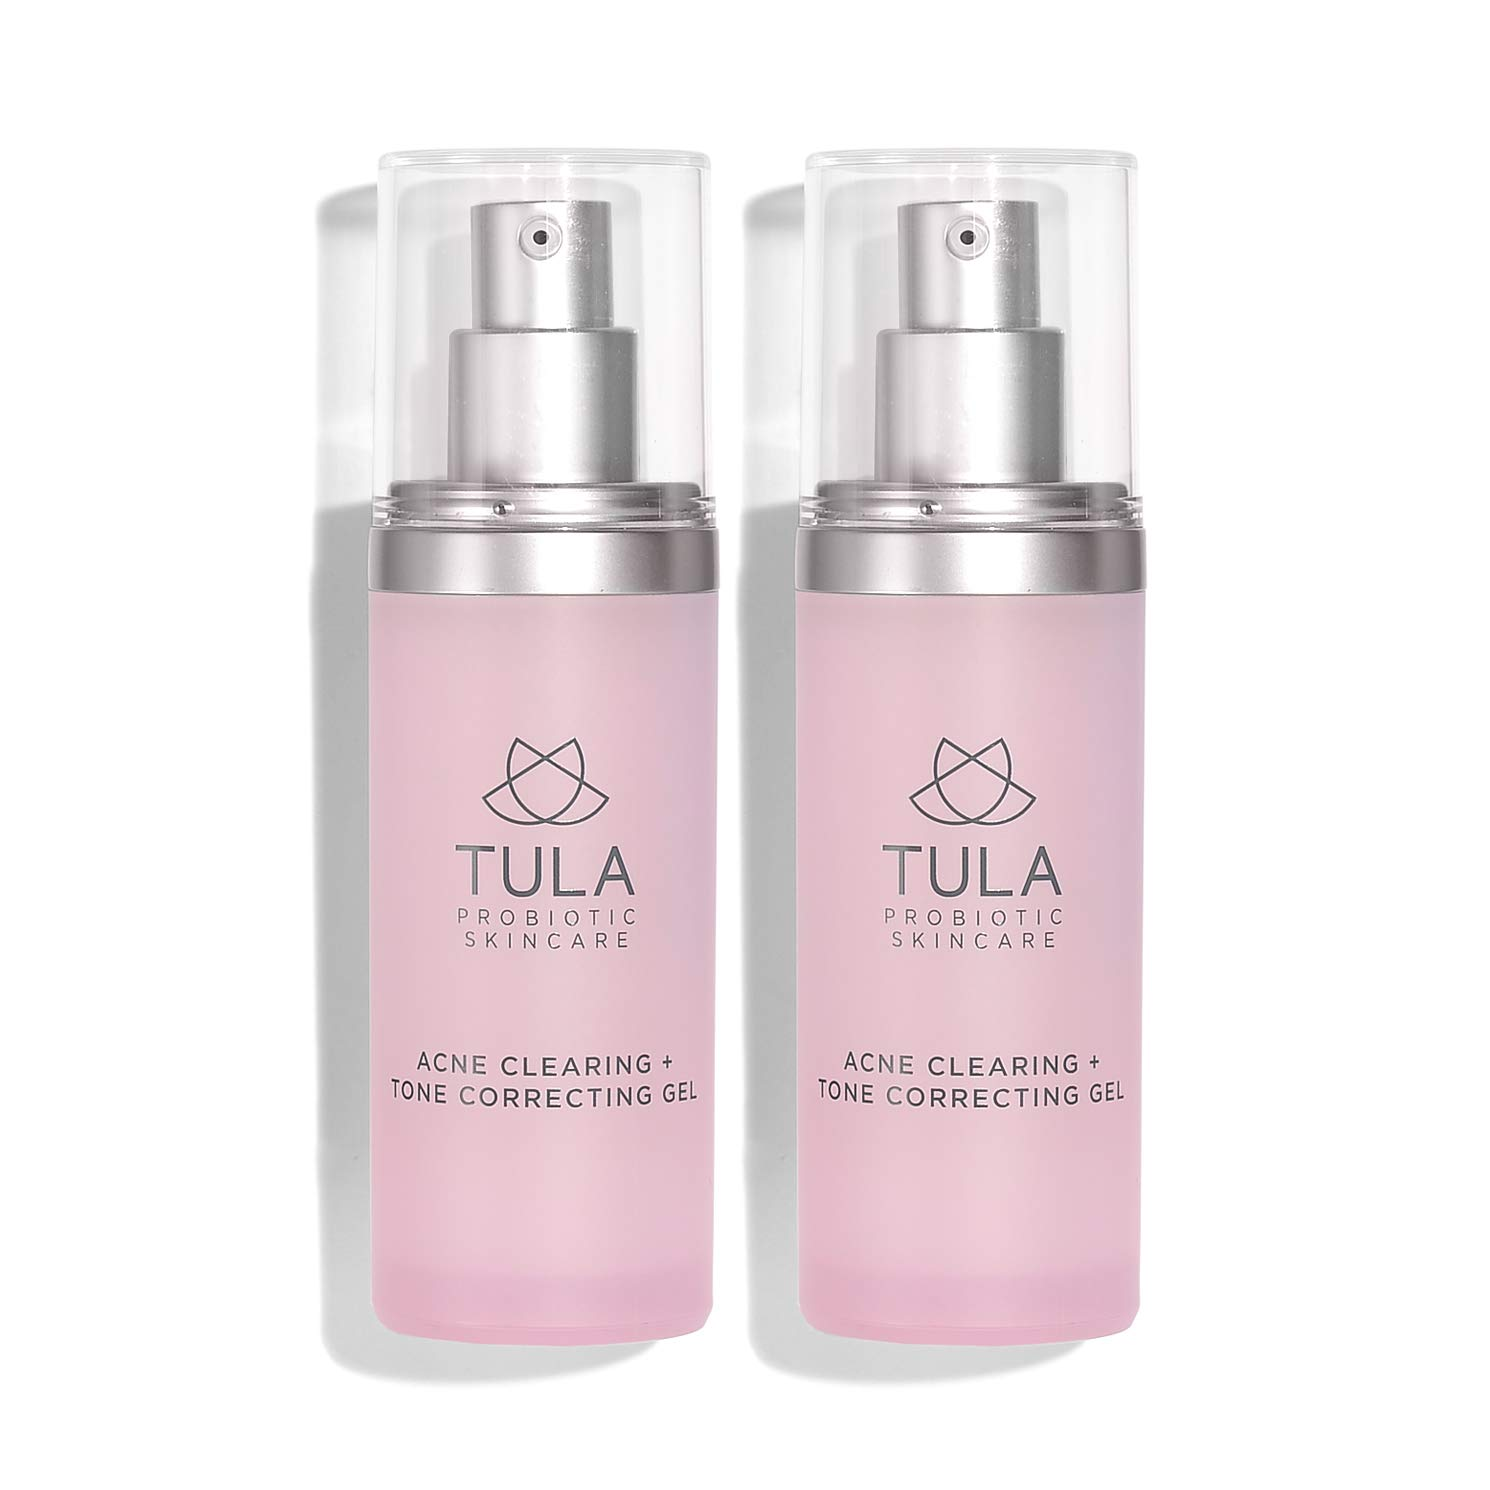 TULA Probiotic Skin Care Acne Clearing + Tone Correcting Gel (Pack of 2) | Acne Treatment, Clear Up Acne, Prevent Breakouts & Brighten Marks, Contains Salicylic Acid and Probiotics | 1 fl. Oz x 2